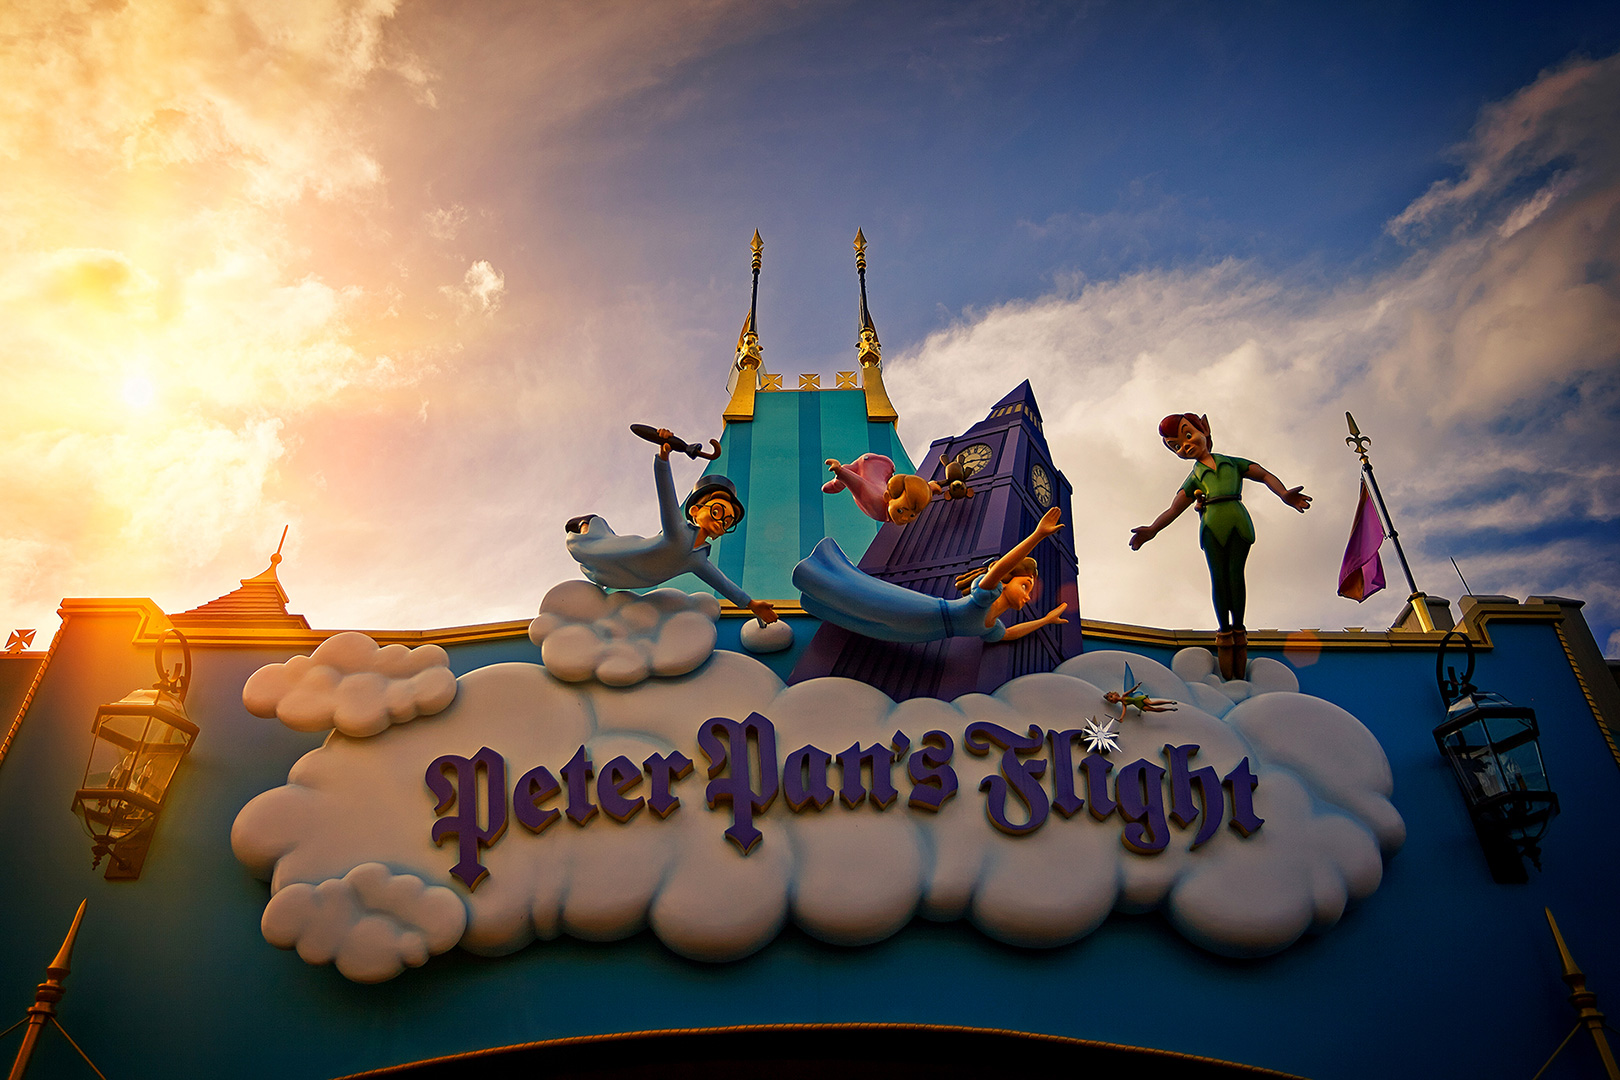 Disney Photography, Disney World Photography, Disneyland Photography, Disney Photos, Disney Pictures, Walt Disney World, The Magic Kingdom, Walt Disney, Mickey Mouse, Orlando, Florida, Theme Park,  Peter Pan, Fantasyland, Dark Ride